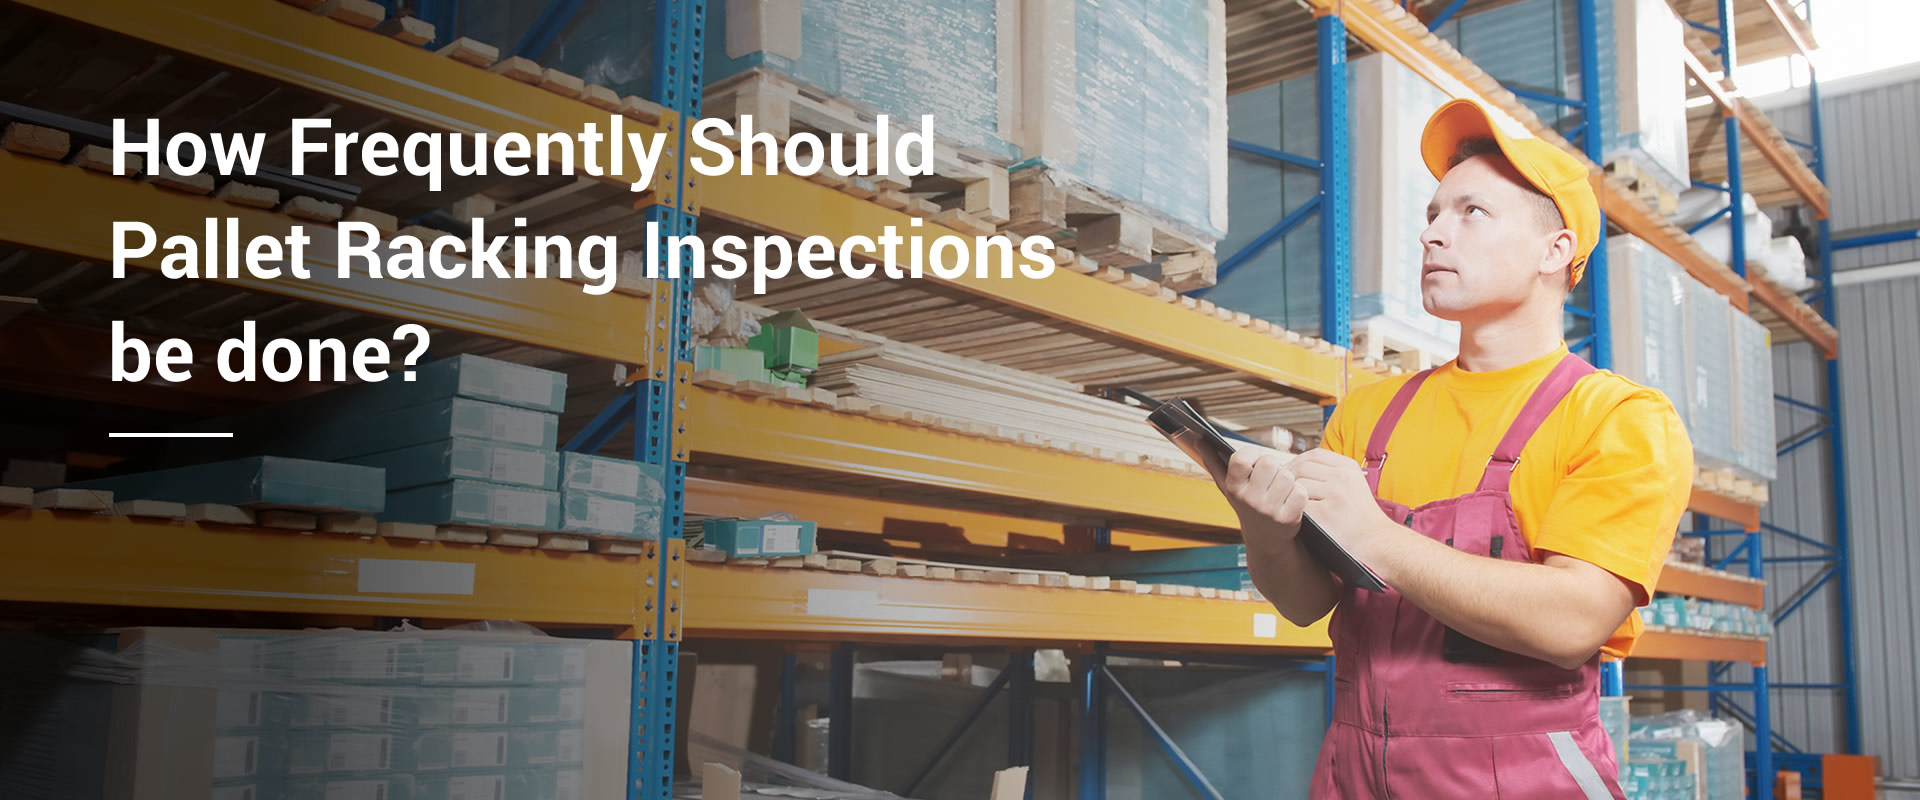 How Frequently Should Pallet Racking Inspections be done?